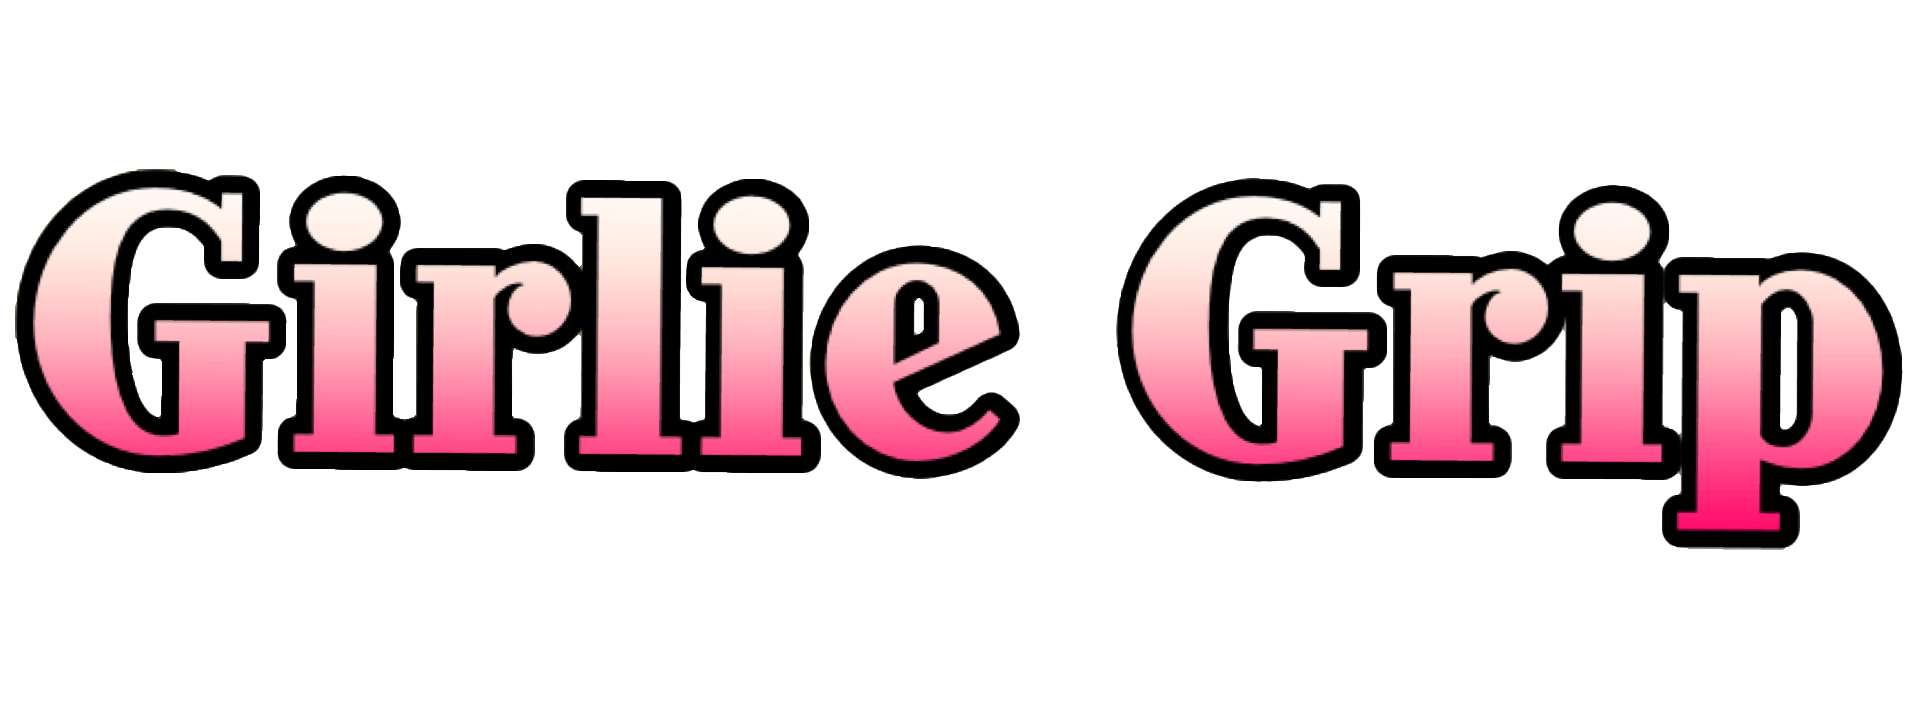 gg_logo_transparent.png